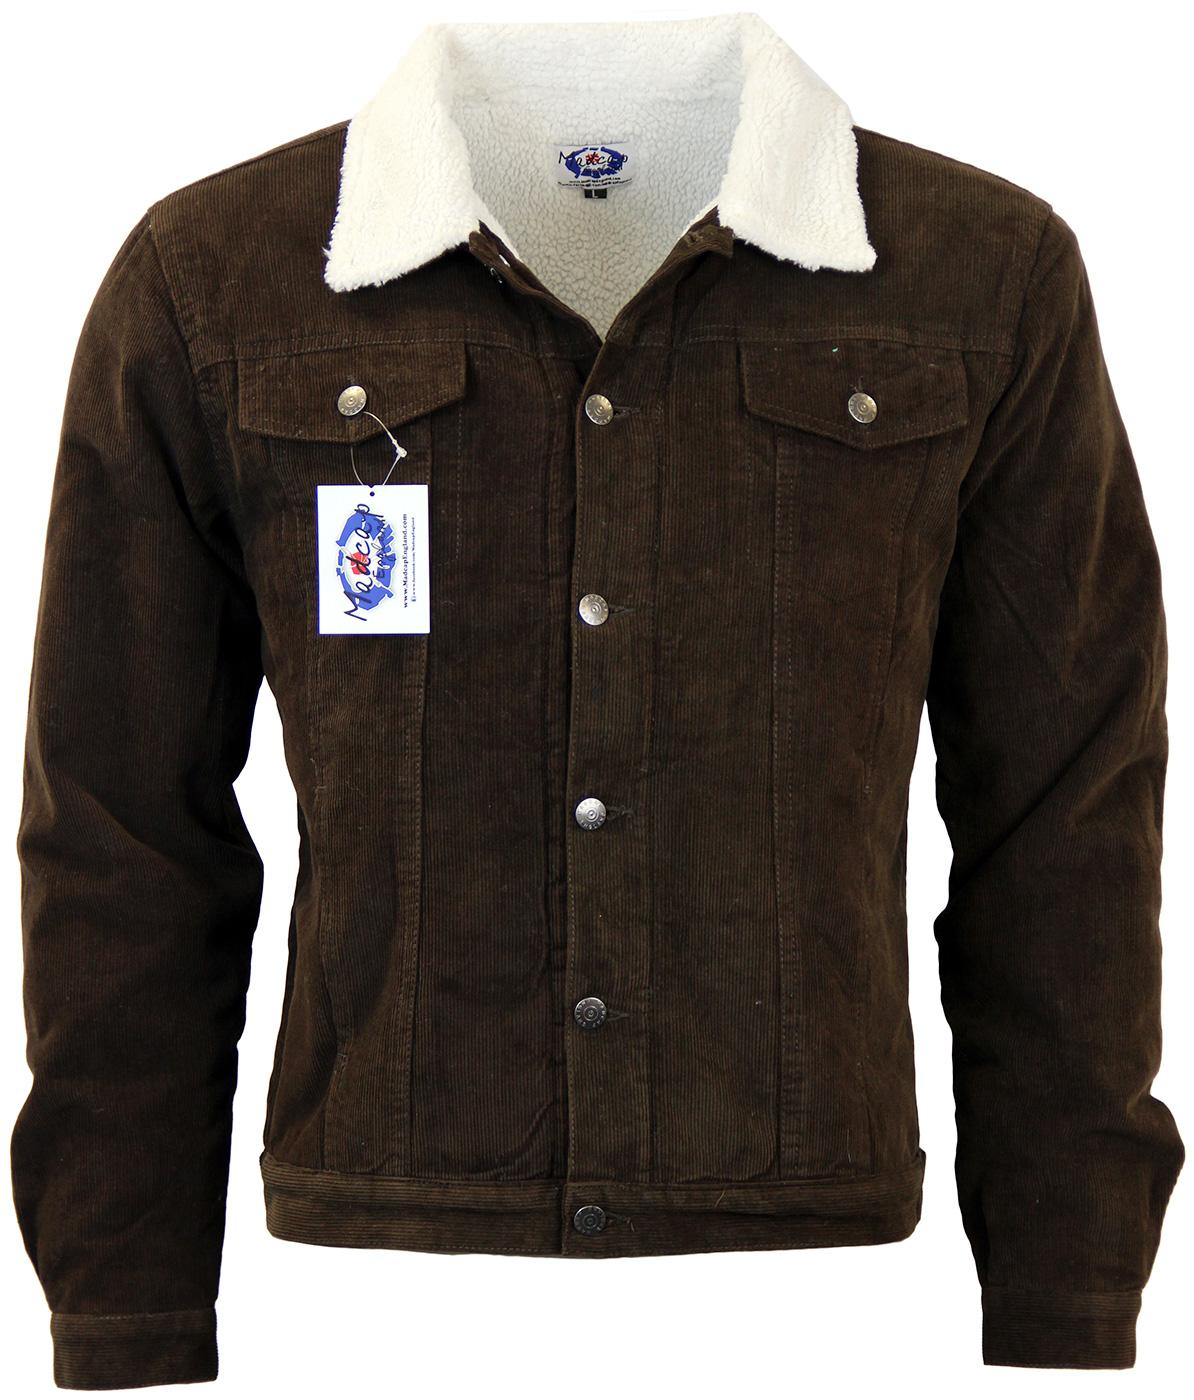 Contender MADCAP ENGLAND Retro Sherpa Lined Jacket